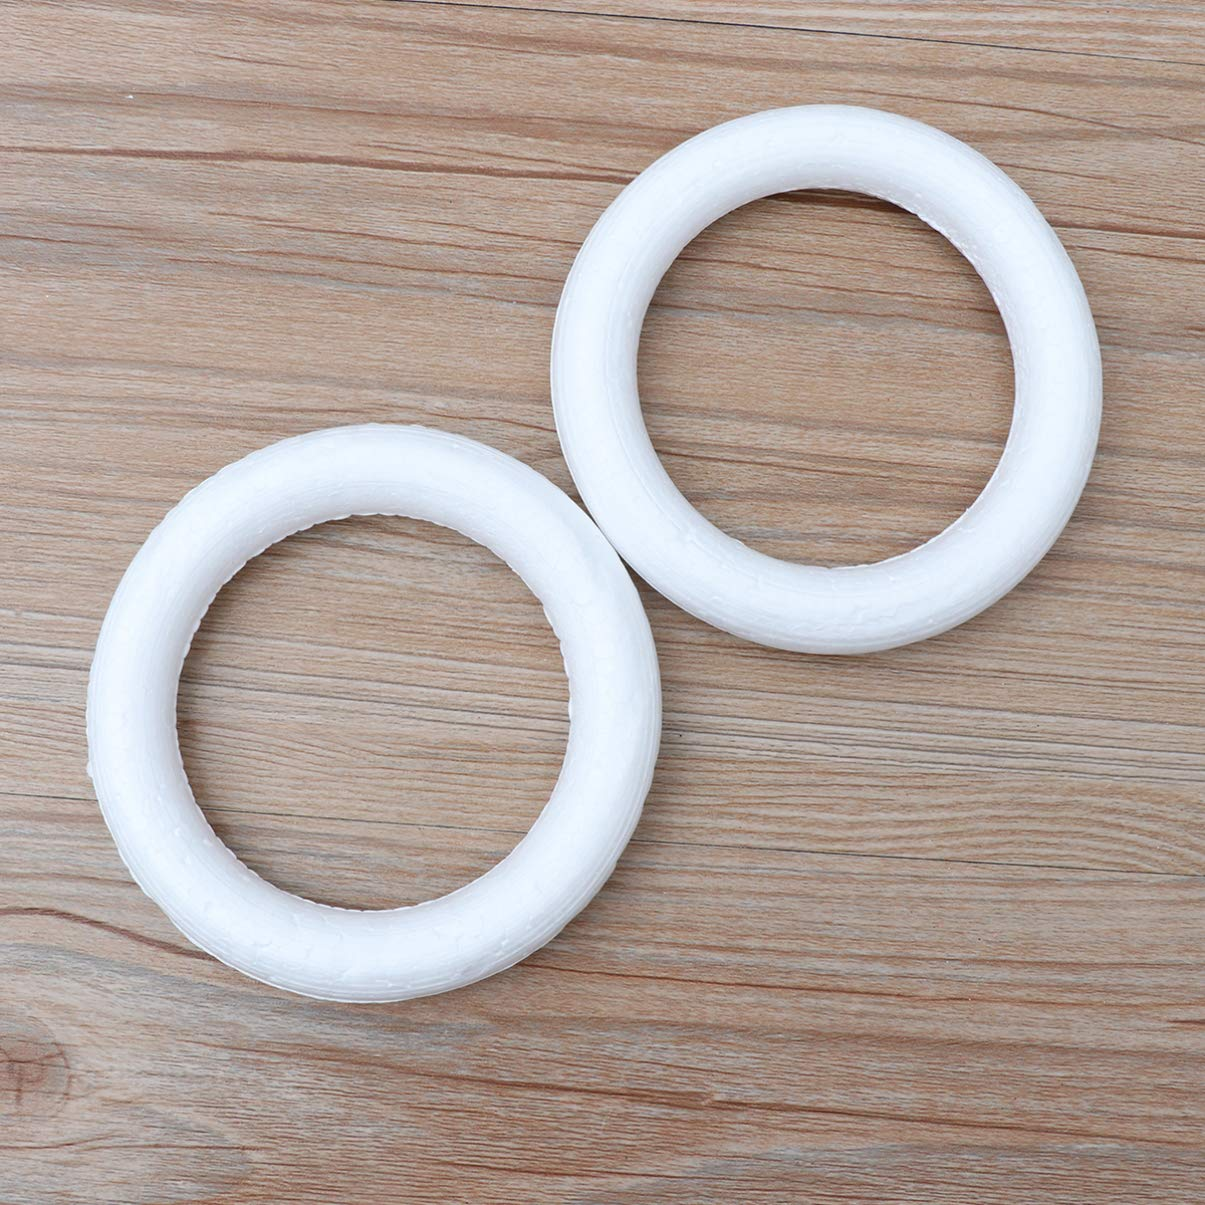 5x1.5cm Healifty Craft Foam Wreath Polystyrene Foam Ring Kids Art Painting Material for DIY Arts and Crafts Floral Projects Christmas Wedding Decorations 50pcs